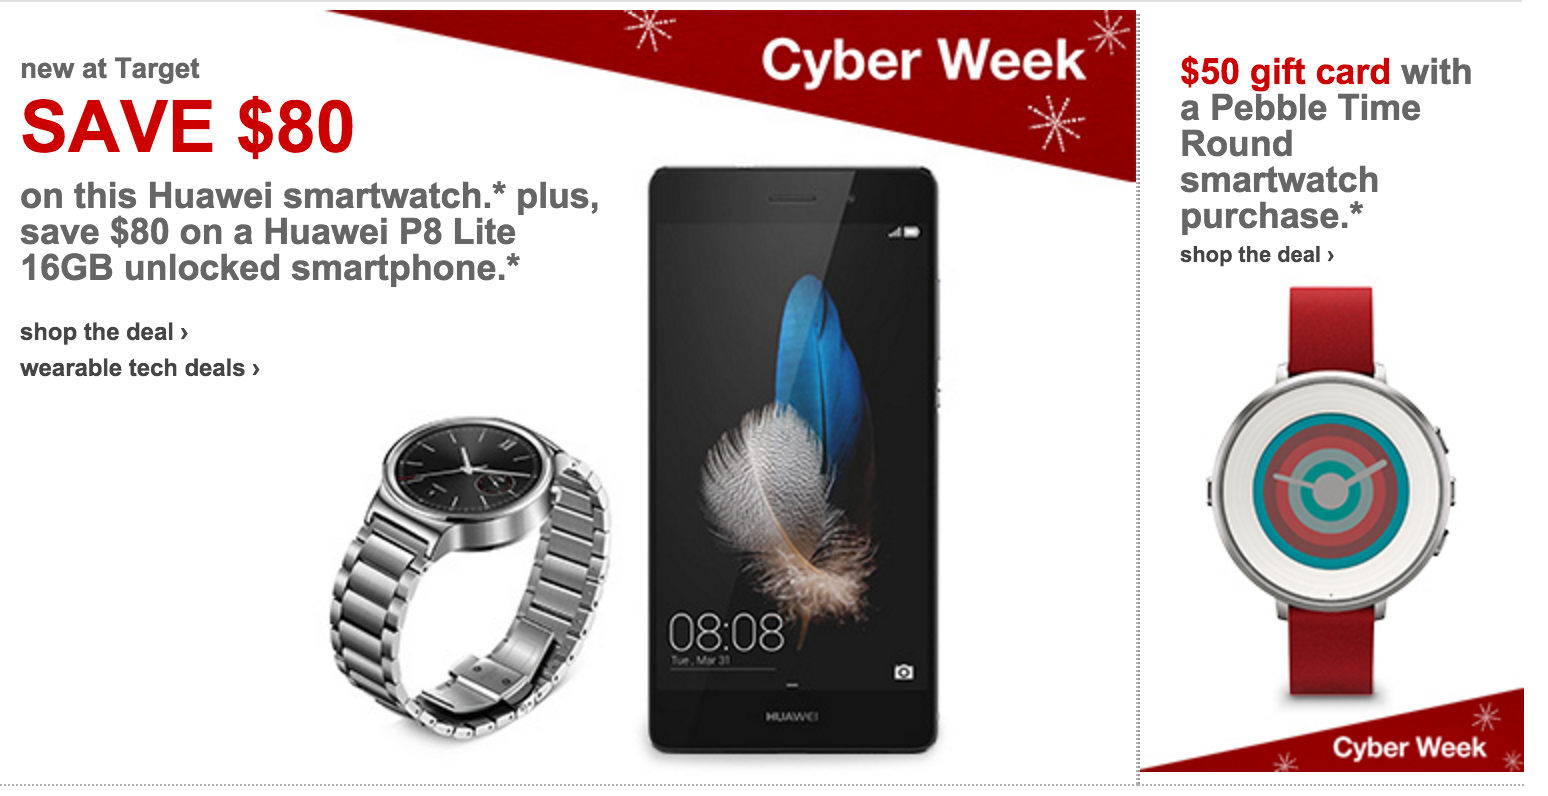 Cyber Monday Smartwatch Android Wear Deals